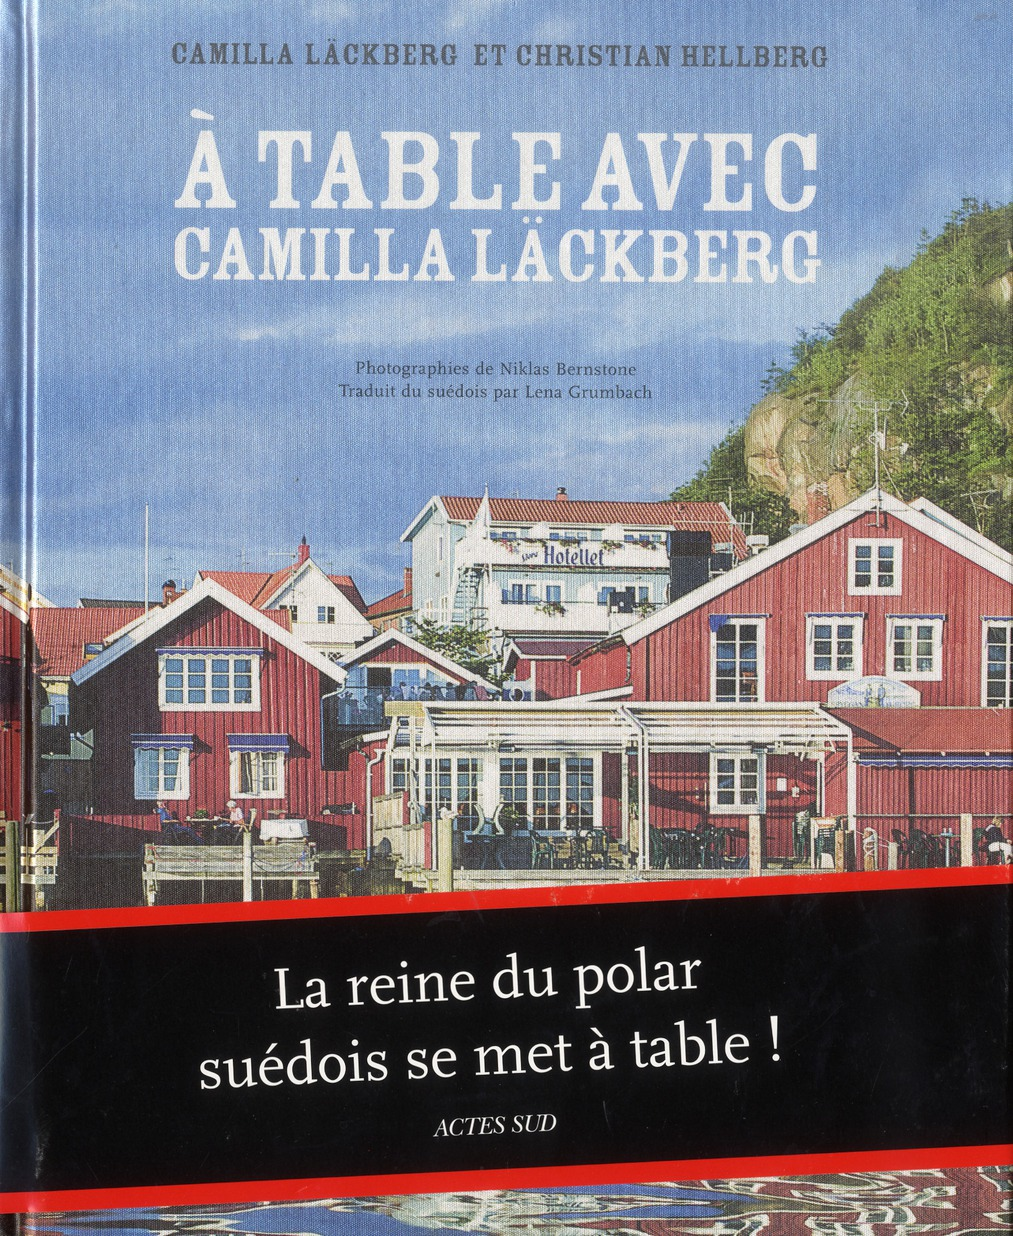 TABLE AVEC CAMILLA LACKBERG (A)